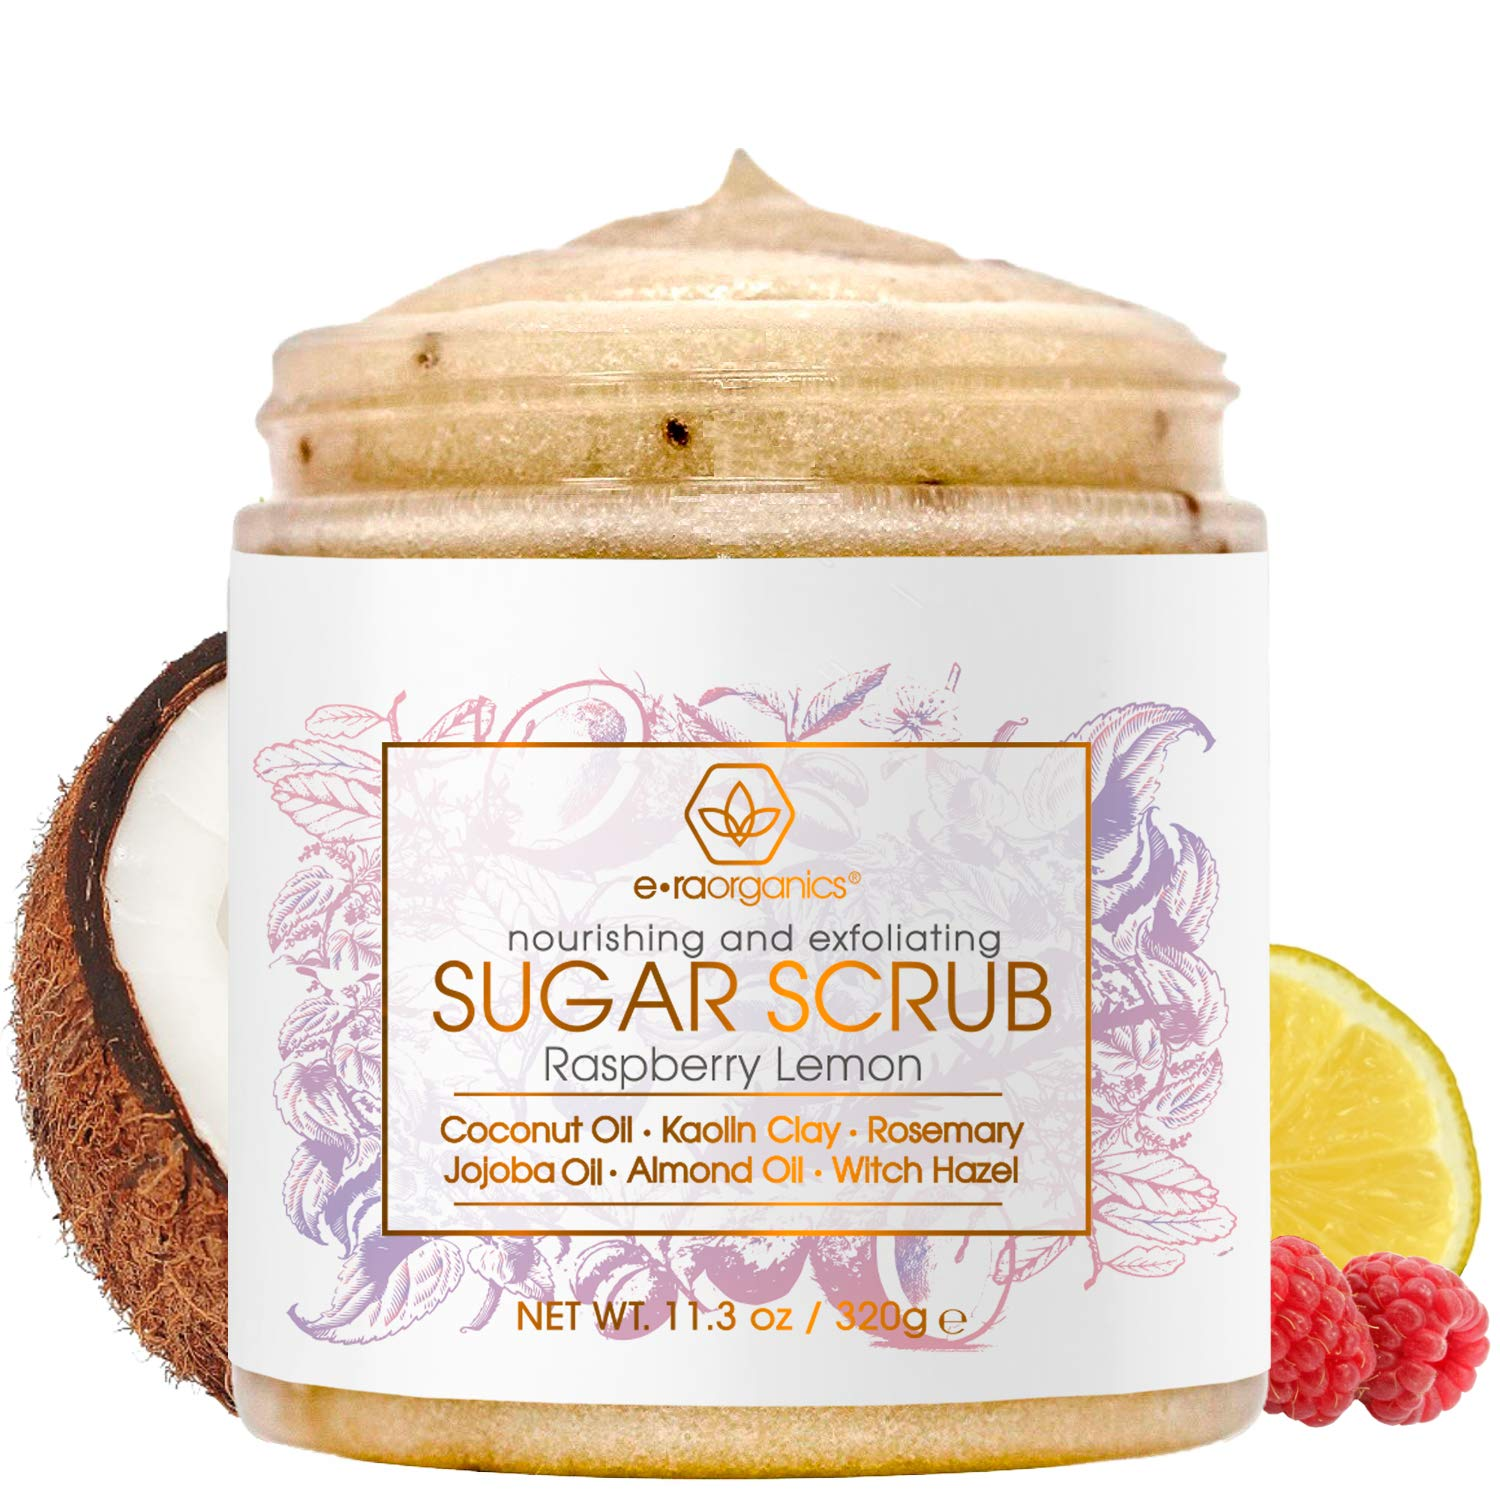 Natural & Organic Sugar Scrub Body Exfoliator - Spa Quality Organic Body Scrub with Food Grade Ingredients to Nourish, Moisturize & Rejuvenate Dull Dry Skin - No Harsh Chemicals, Parabens or Sulfates : Beauty